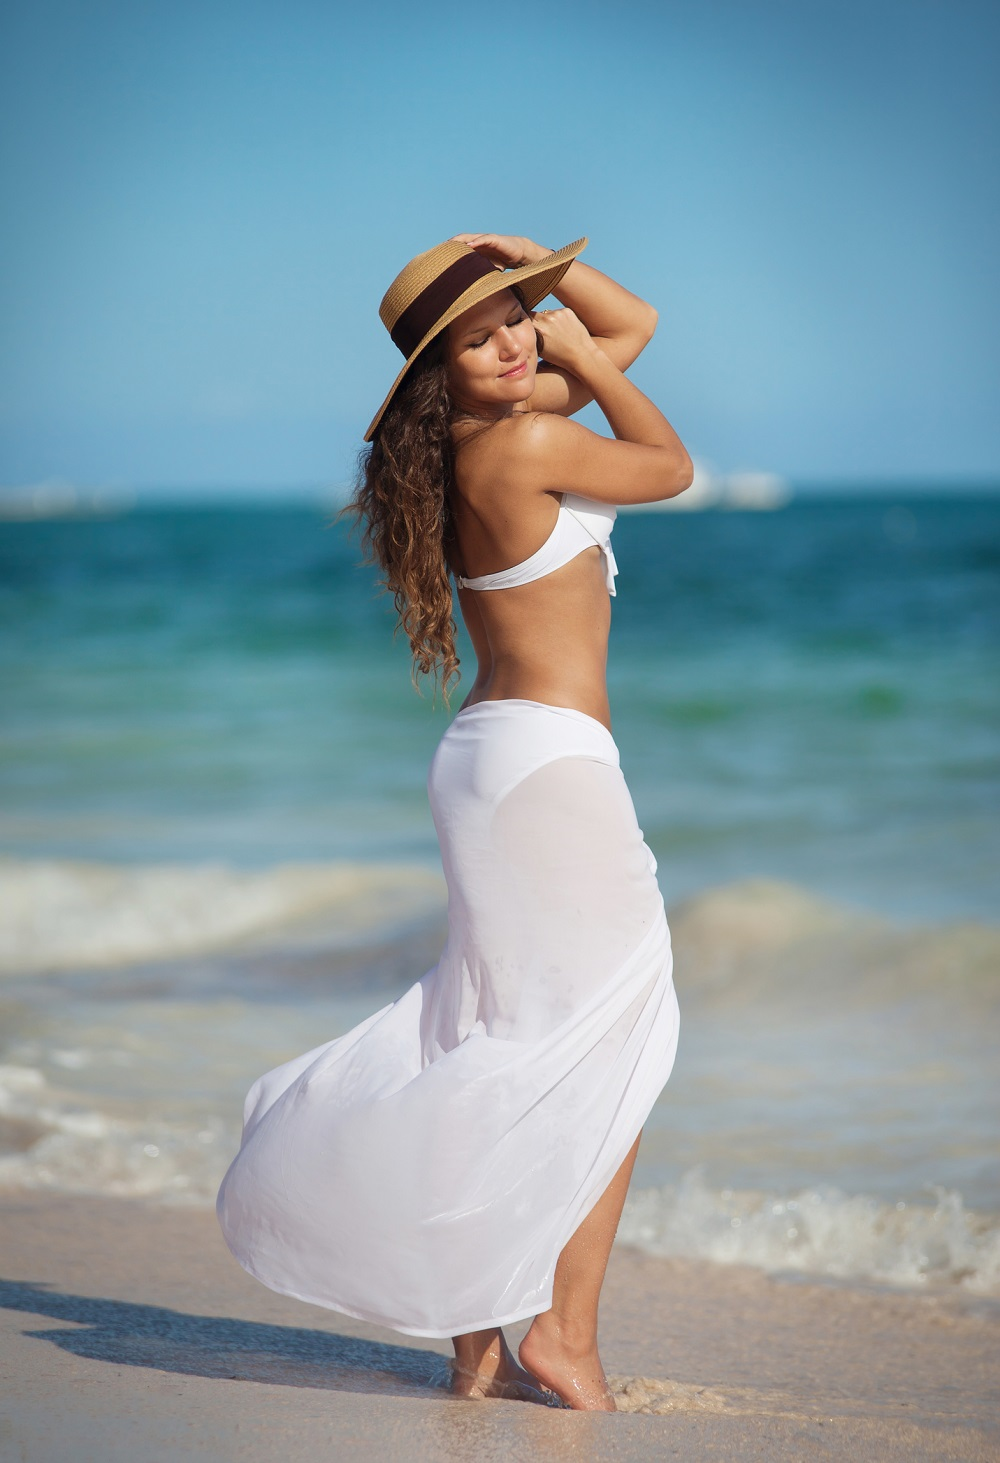 Tired of Avoiding the Beach Because of a Heavy Flow? It's Time to talk to your OBGYN change the cycle